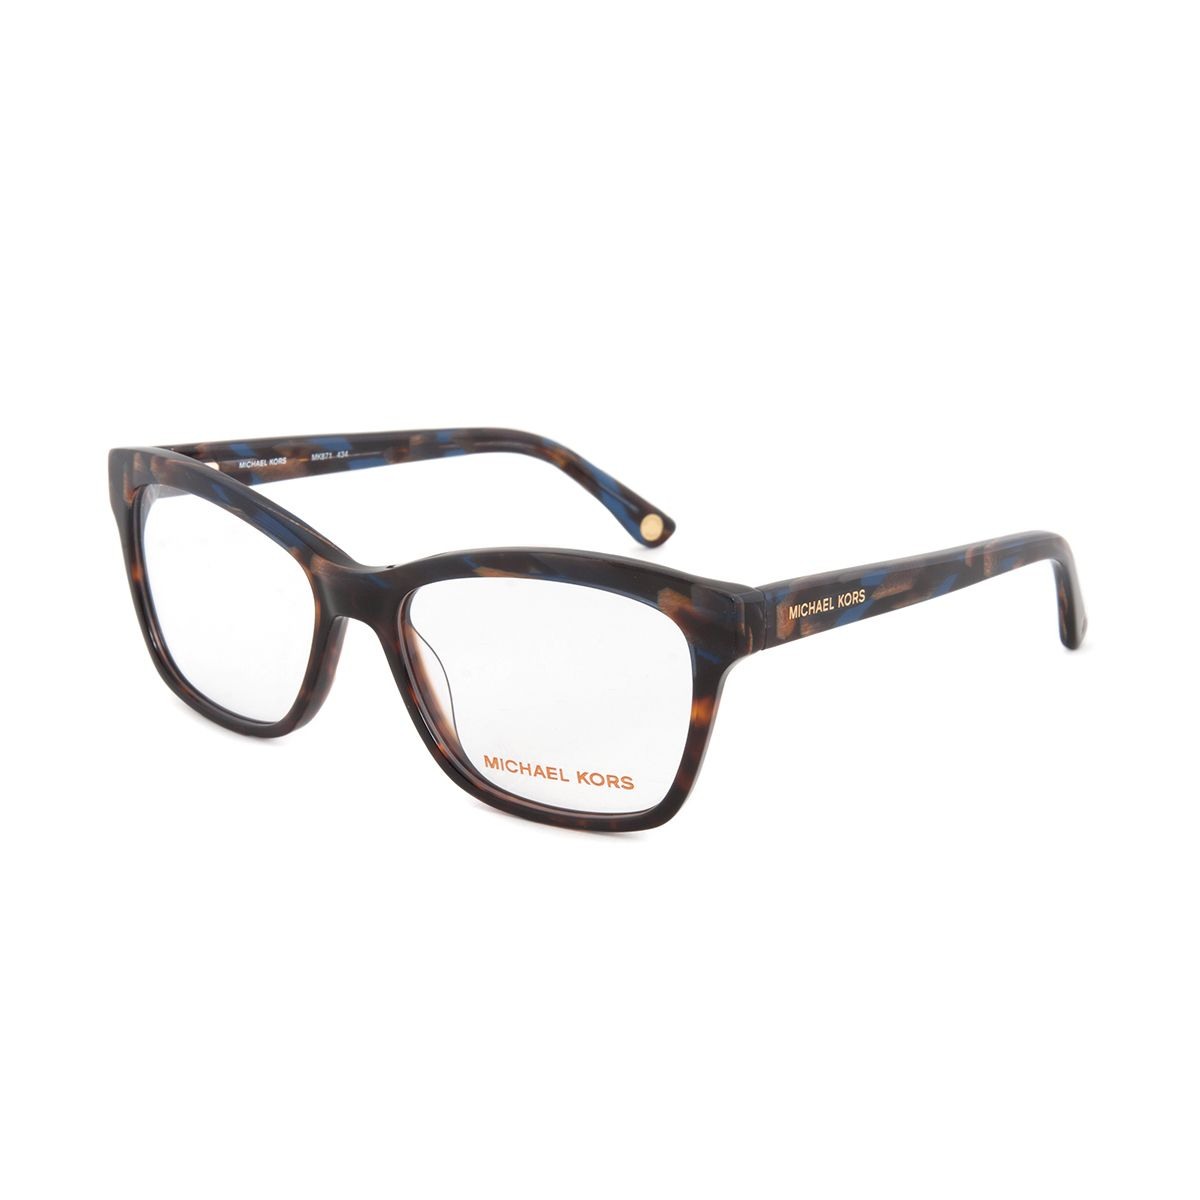 3d353f2a1e Micheal Kors Optic Eyeglass Frames include a a clear demo lens with print  and are prescription-ready.